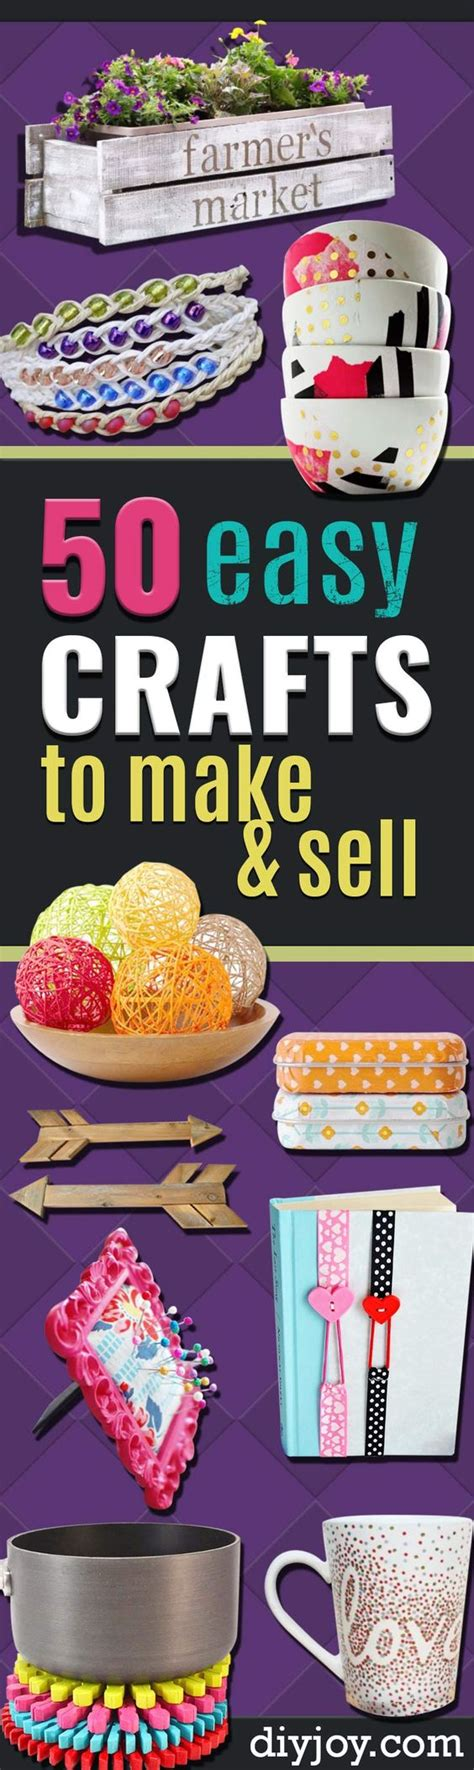 ac craft projects 50 easy crafts to make and sell make and sell